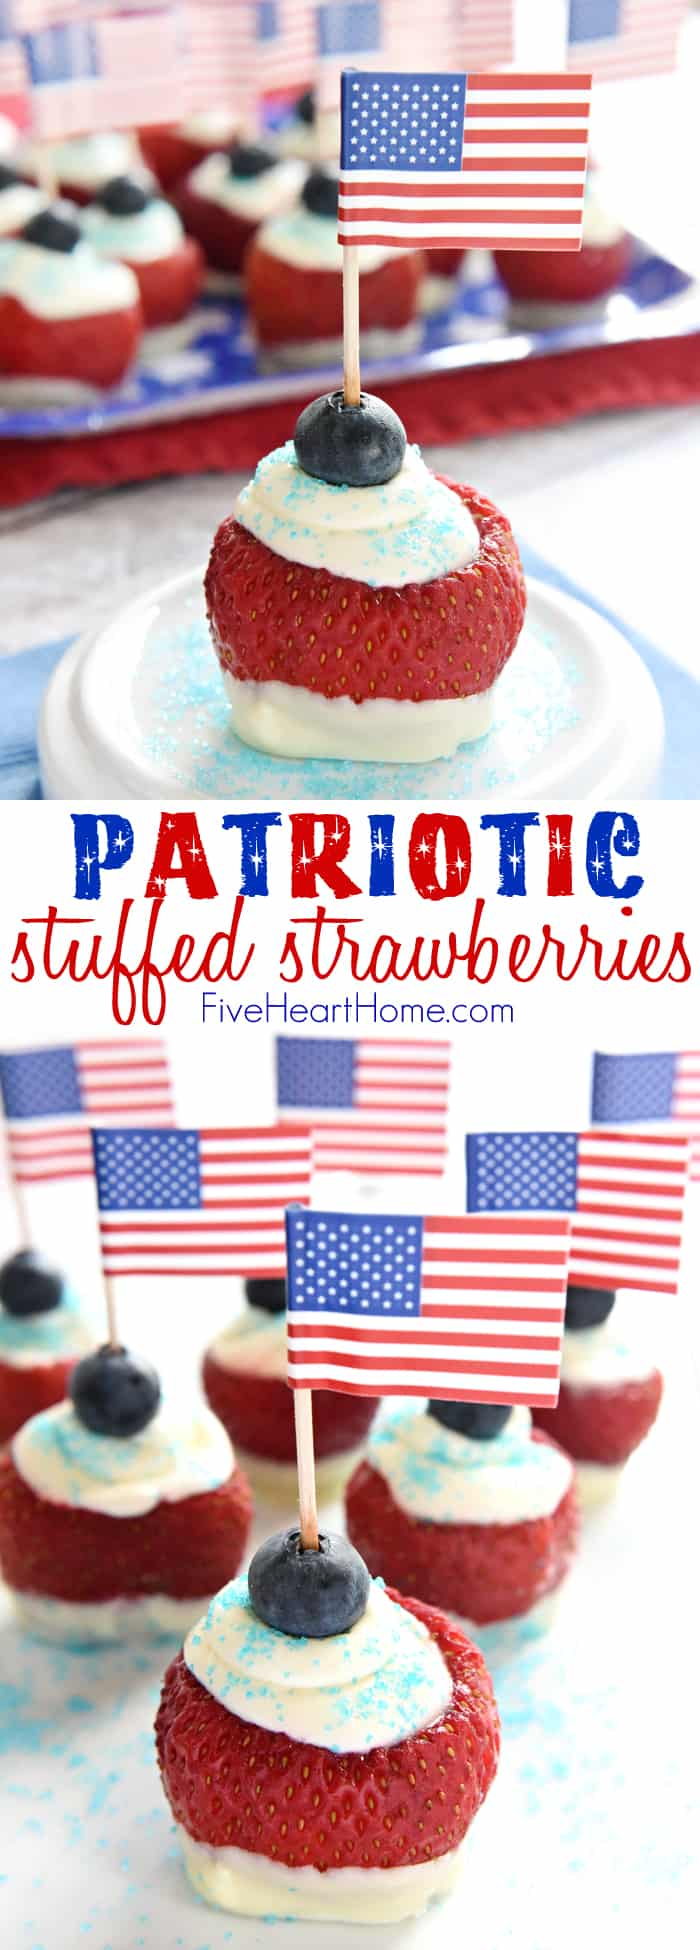 Patriotic Stuffed Strawberries ~ juicy strawberries are dipped in white chocolate, filled with sweetened cream cheese, and topped with a blueberry and an American flag in these cute treats, perfect for any 4th of July celebration! | FiveHeartHome.com